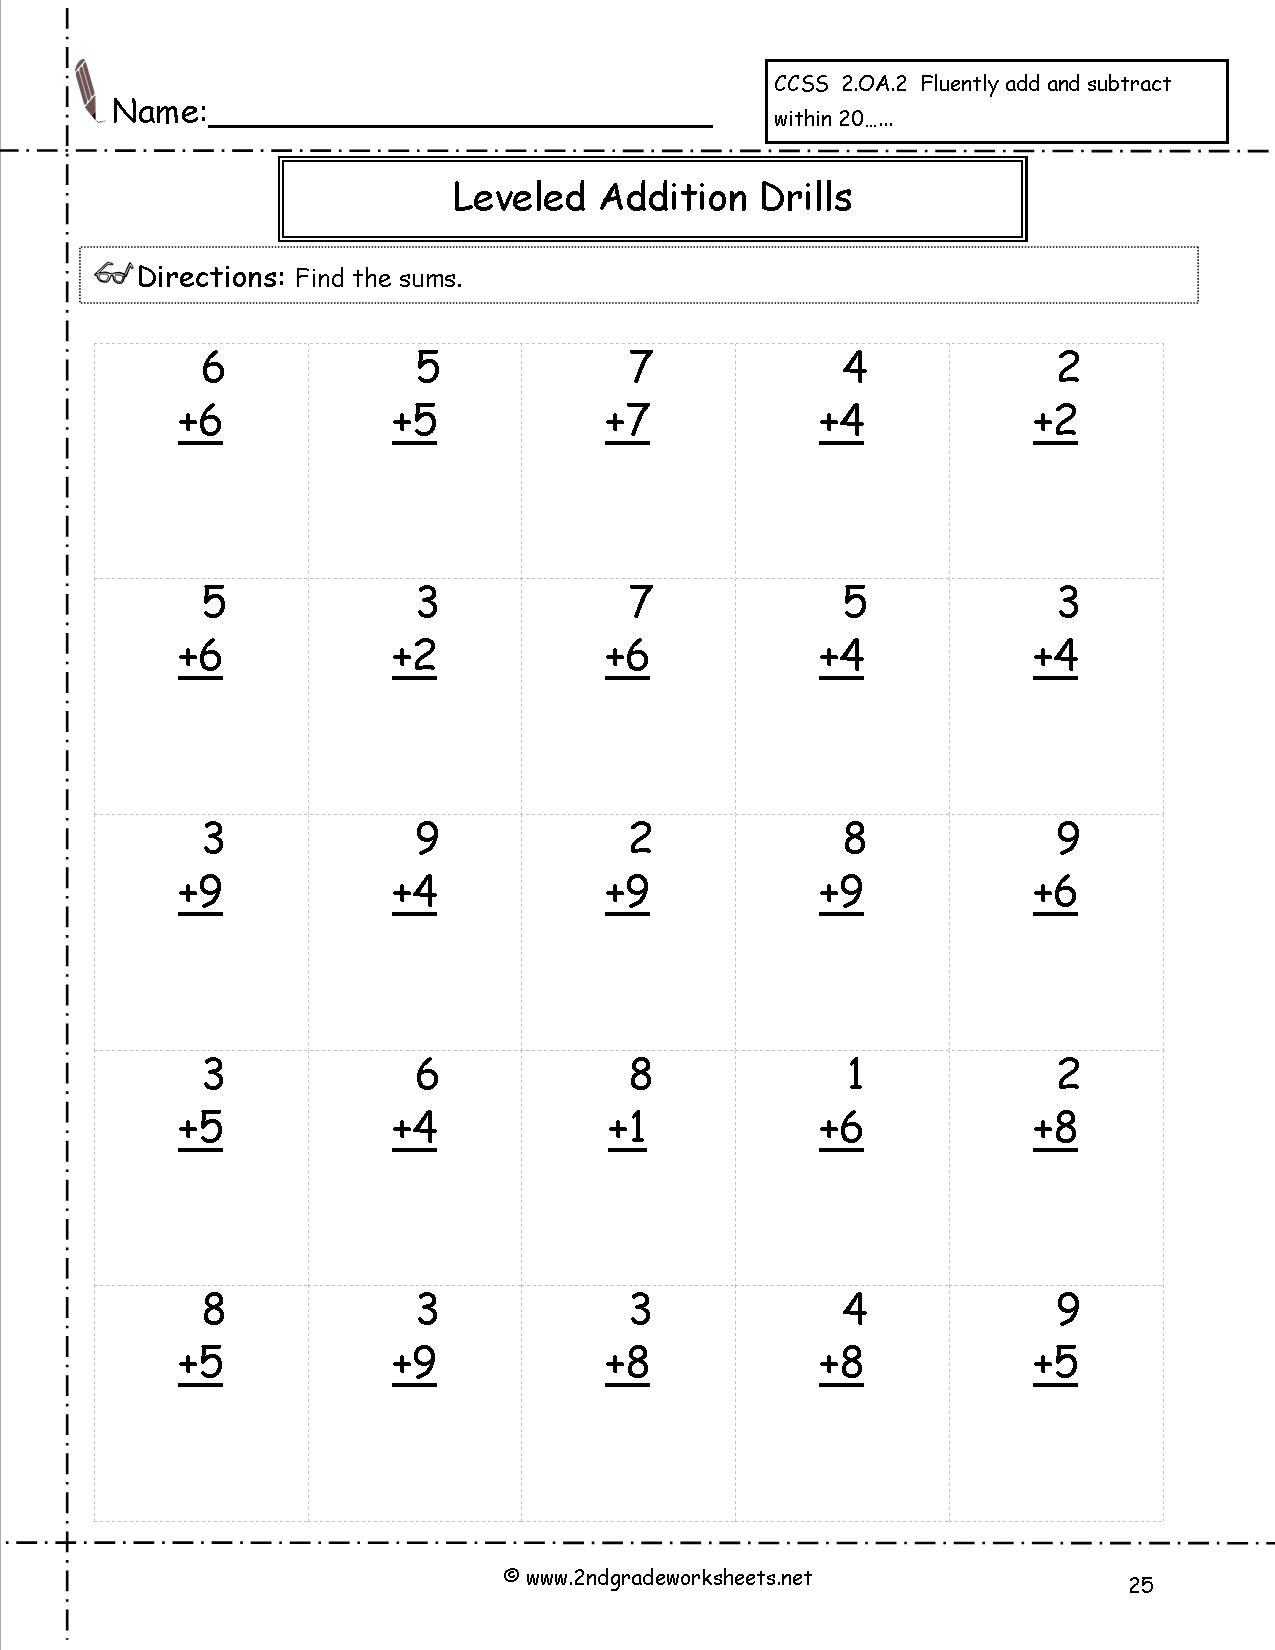 Free Math Worksheets And Printouts - Free Printable Subtraction Worksheets